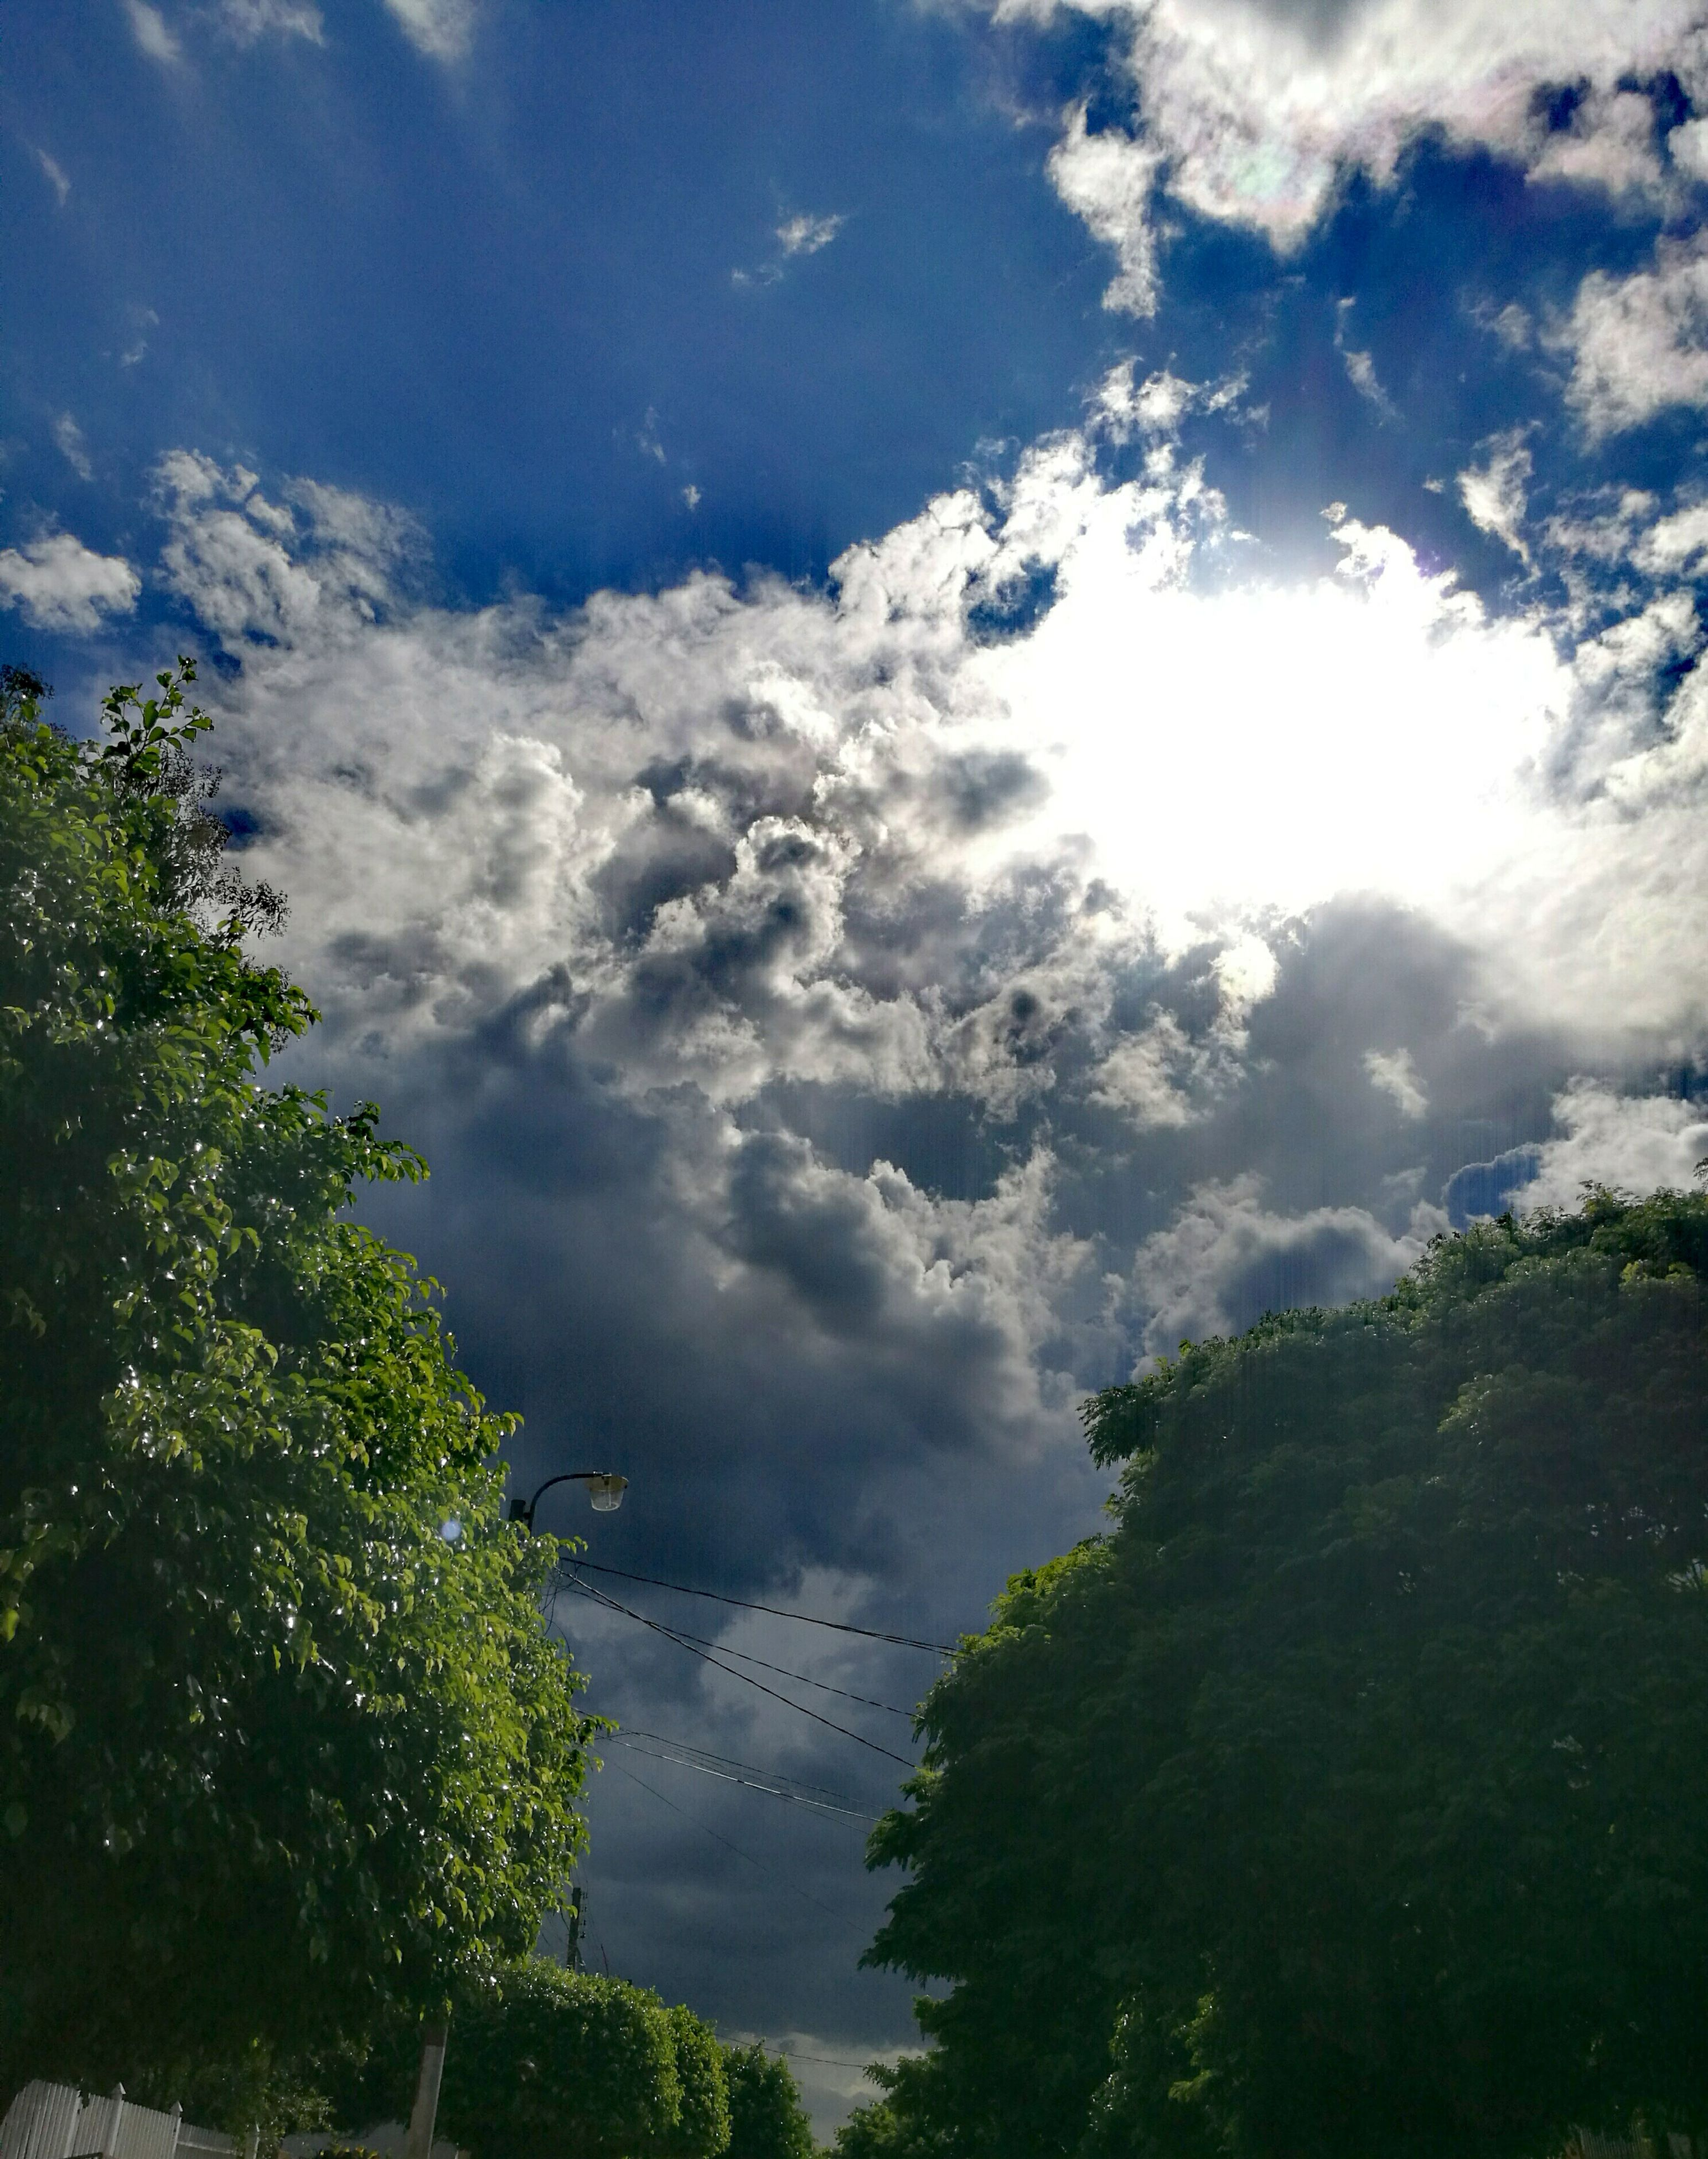 tree, sky, nature, cloud - sky, beauty in nature, no people, outdoors, day, treetop